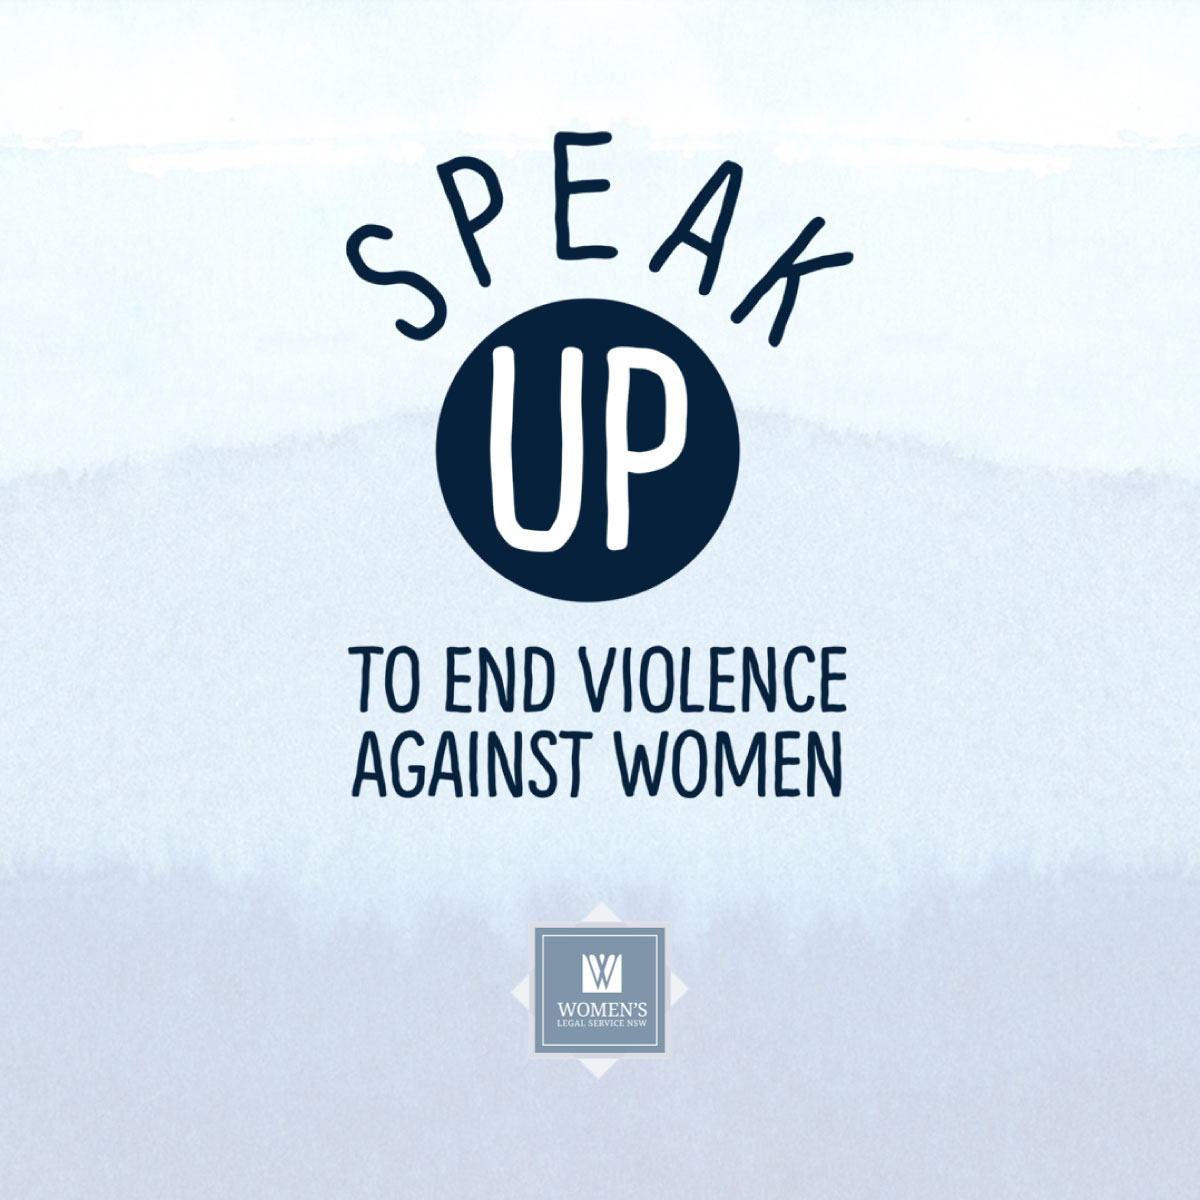 speak-up-end-violence-against-women-logo